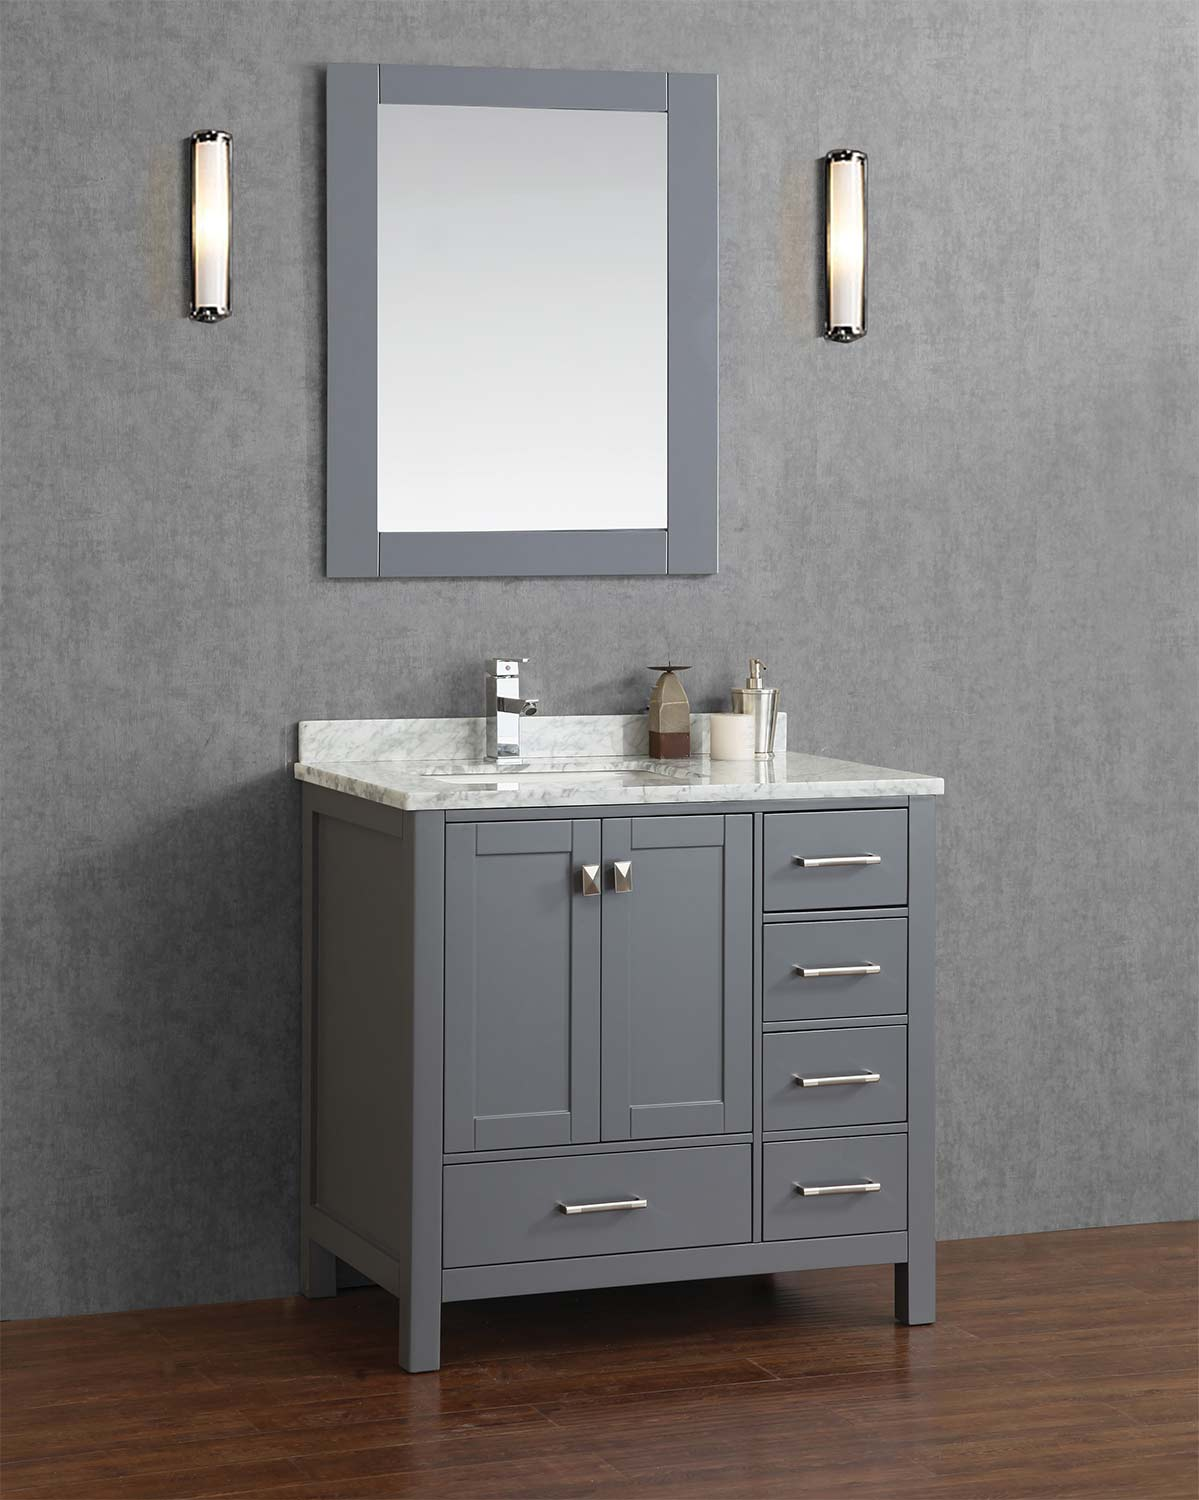 Bathroom Vanities. Katherine 48\ Bathroom Vanities R - Brint.co on bathroom with mirror, bathroom with glass shower, dark cherry bathroom vanity, heritage cherry bathroom vanity, bathroom with kitchen cabinets, bathroom vanity sale clearance, 19 inch deep bathroom vanity, bathroom with furniture,